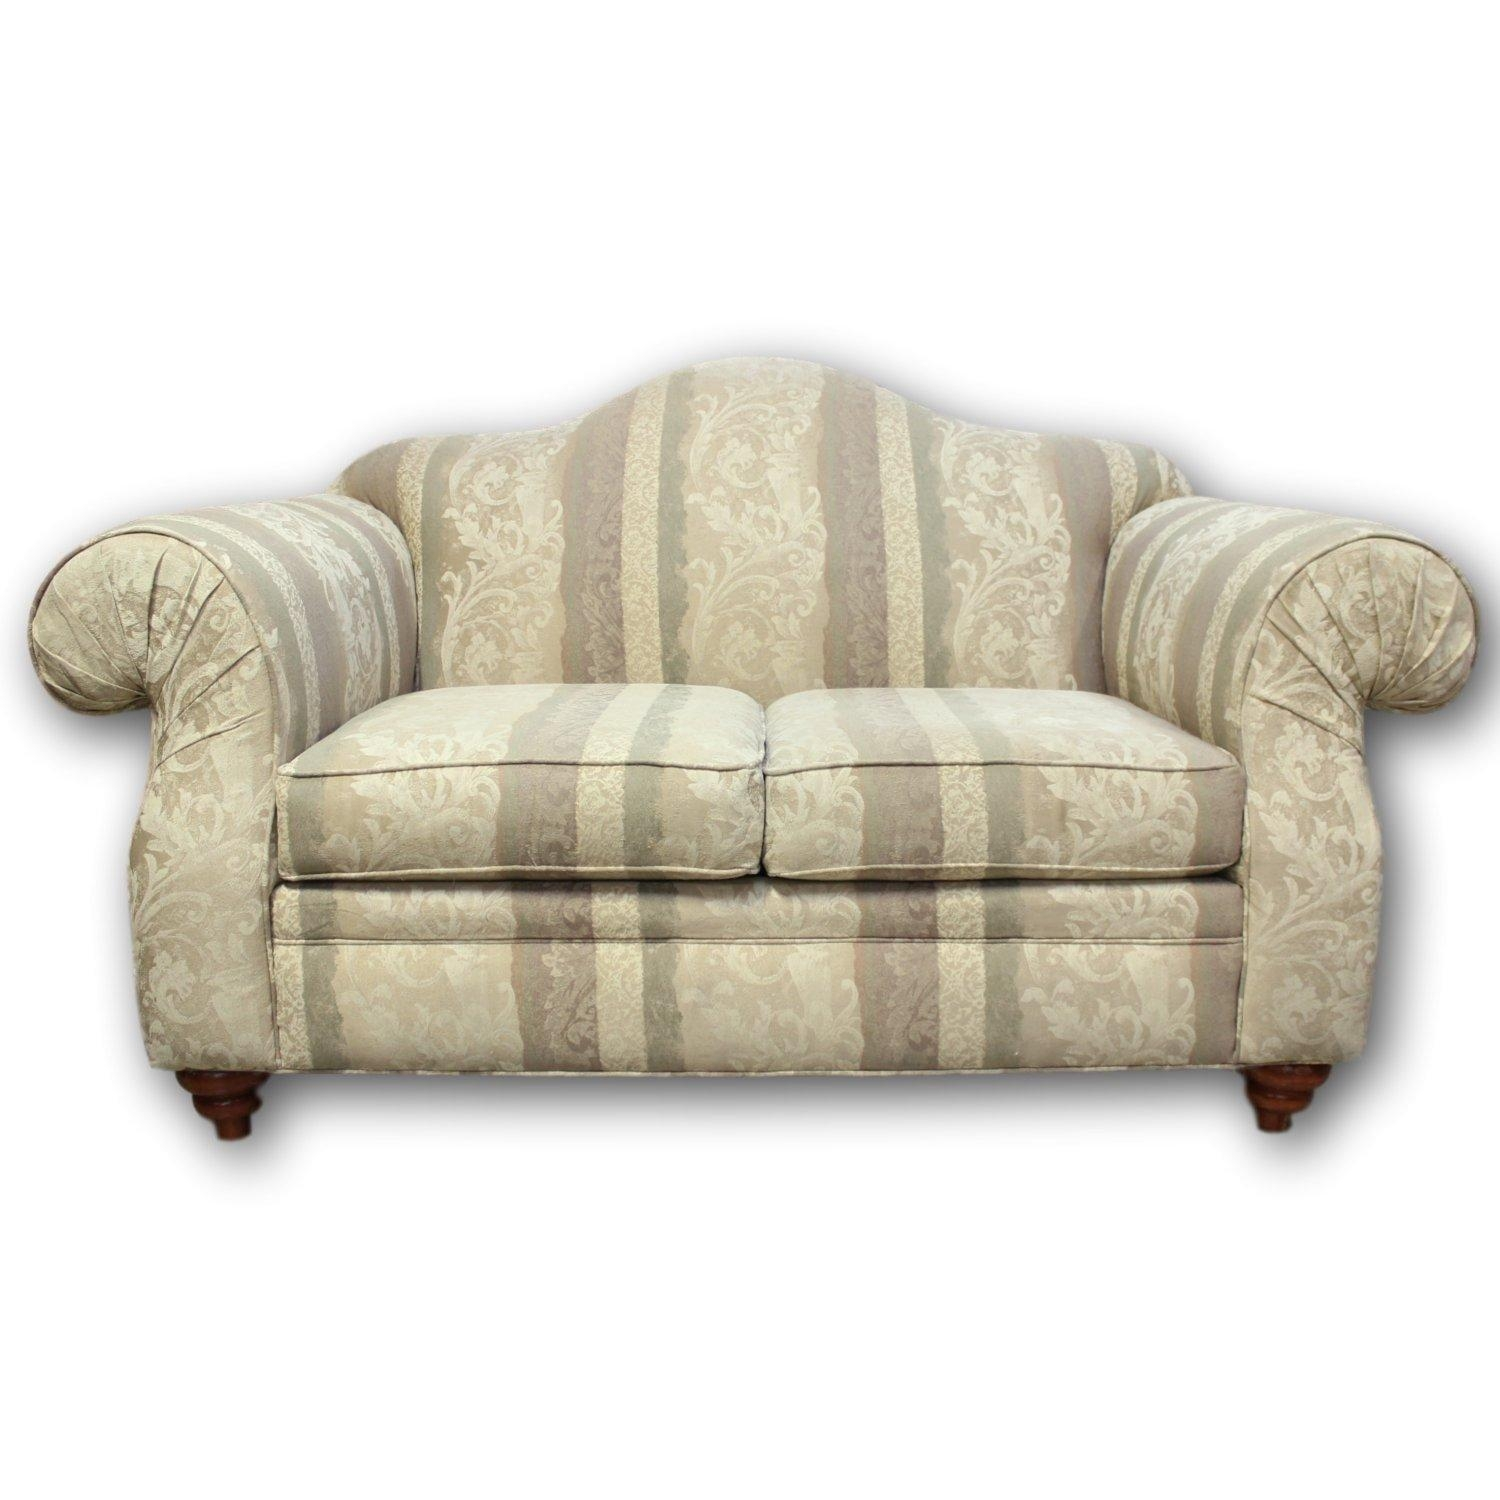 Alan White Camelback Loveseat | Upscale Consignment Throughout Alan White Couches (Image 3 of 20)